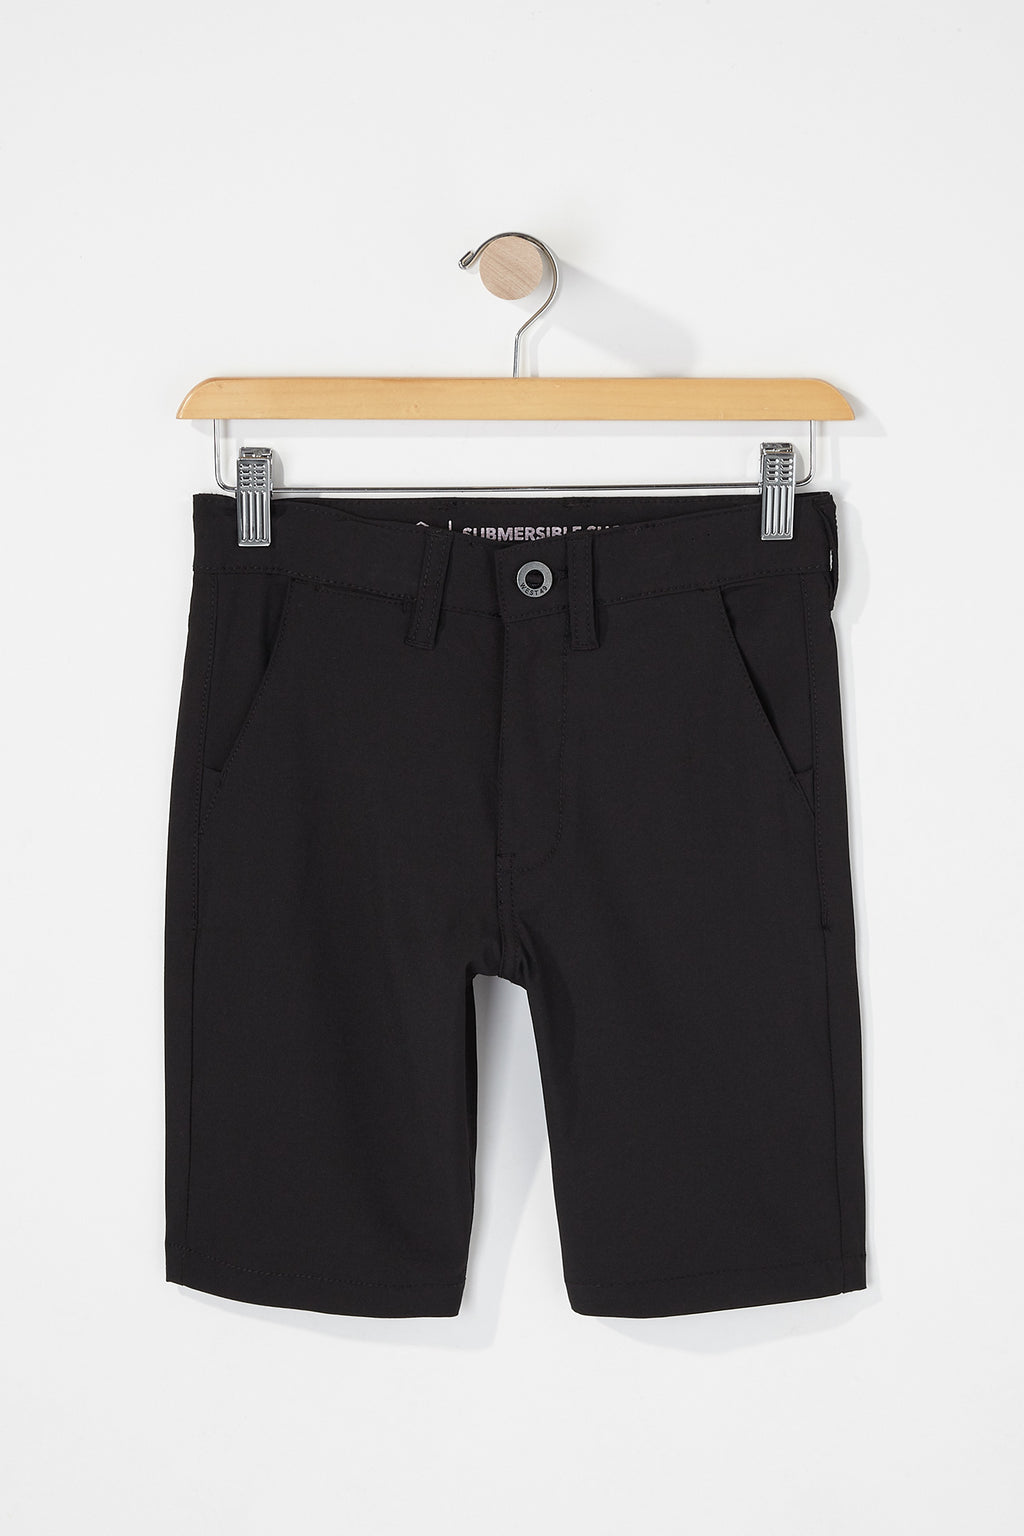 West49 Boys Submersible Shorts